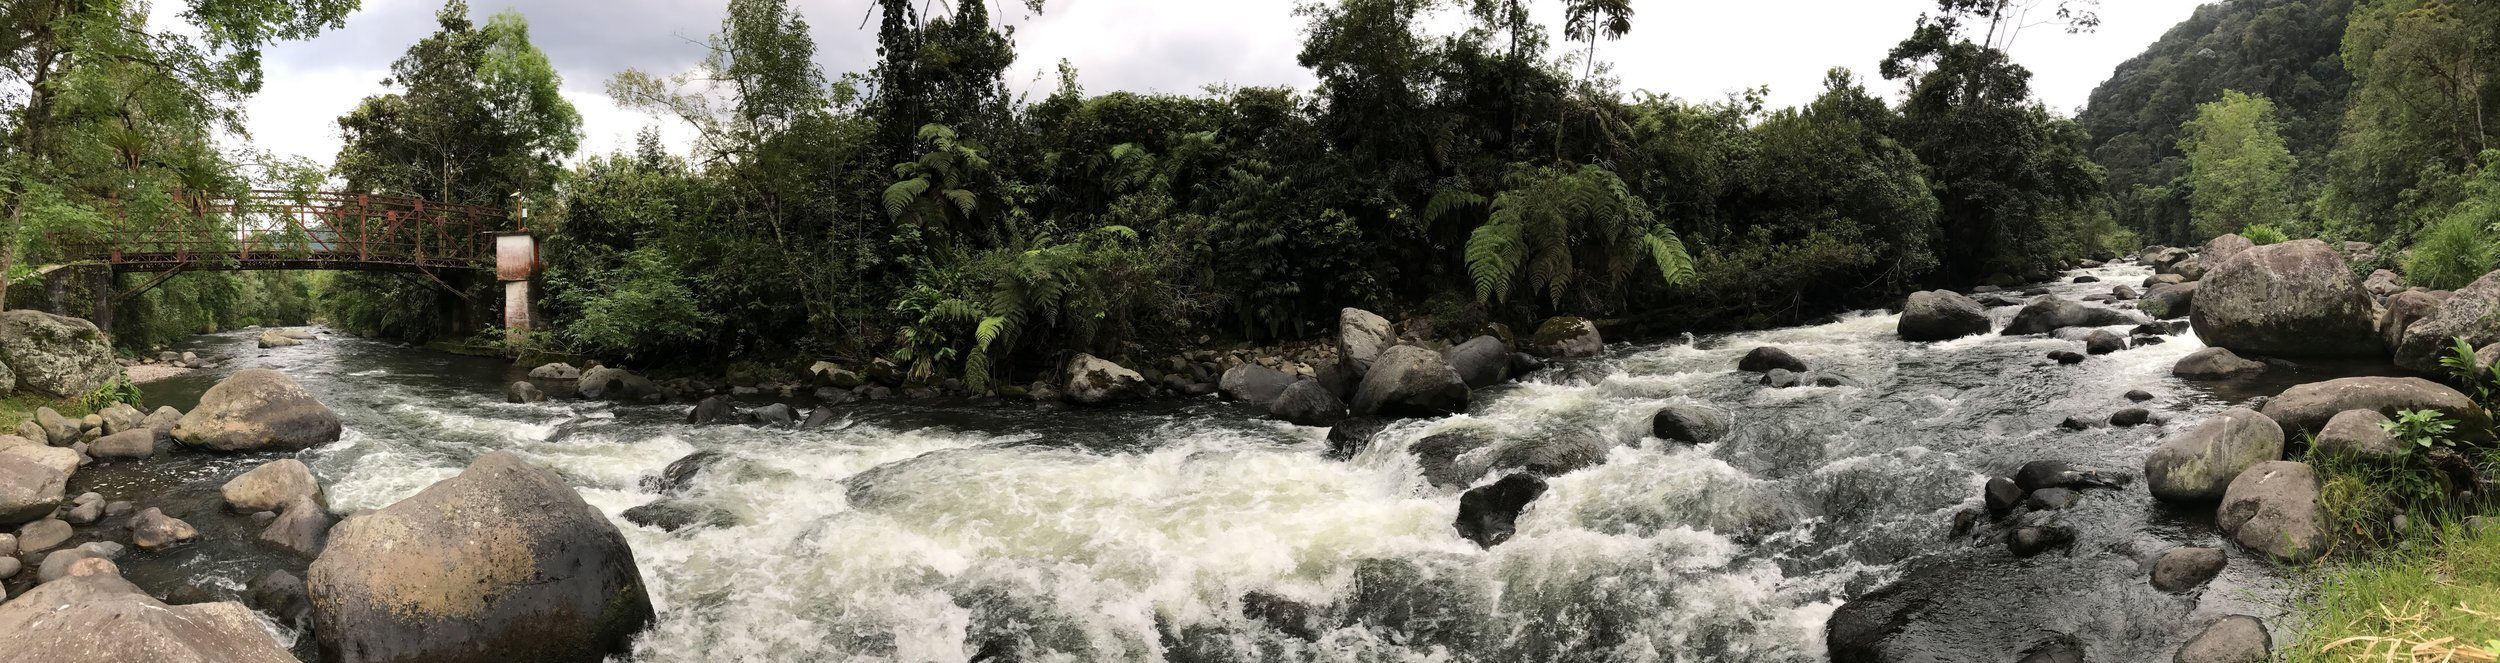 Colombia river.jpg